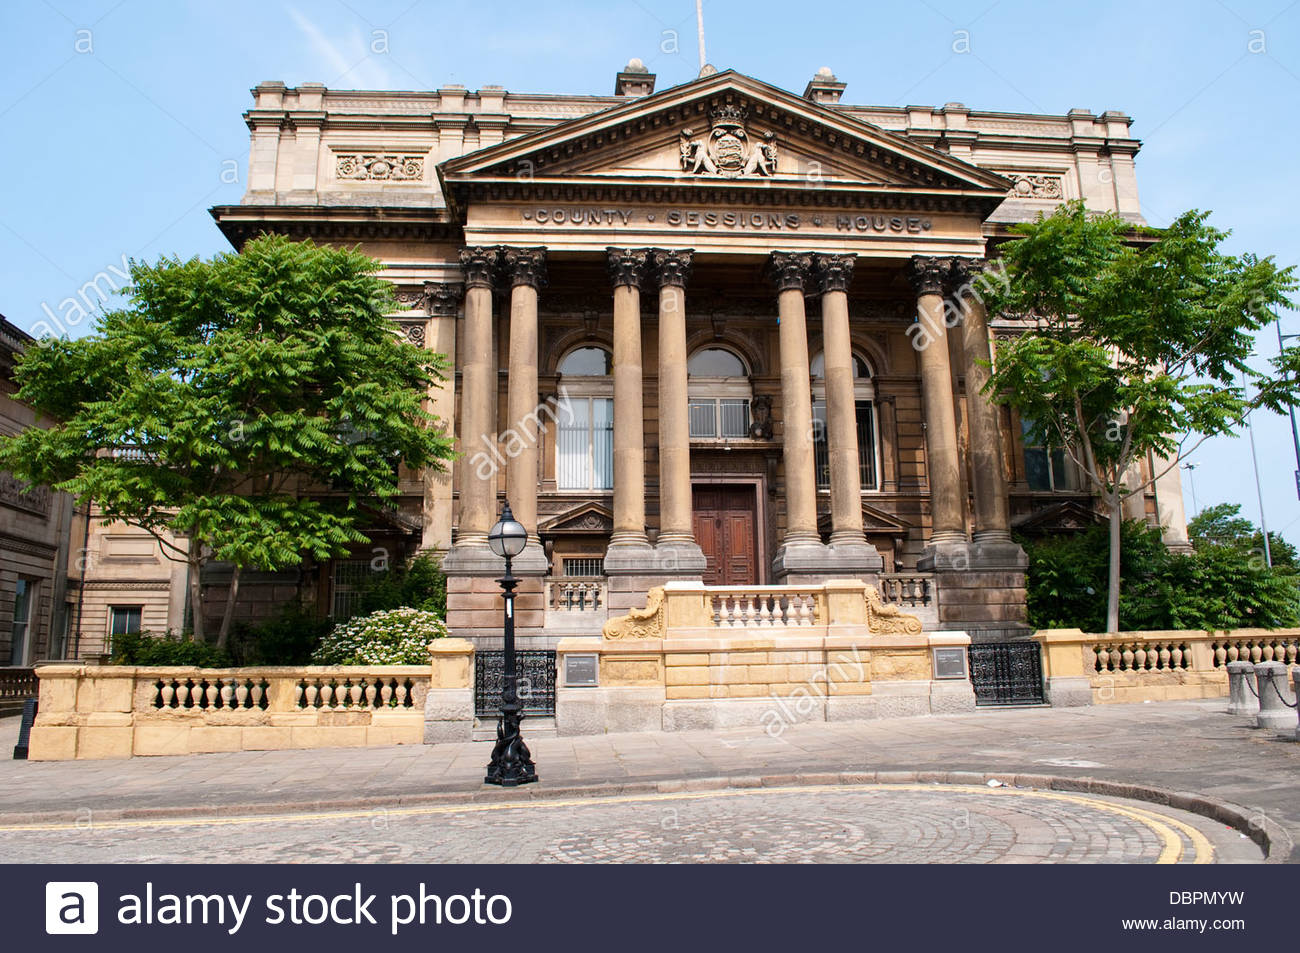 County Sessions House, Liverpool, UK - Stock Image